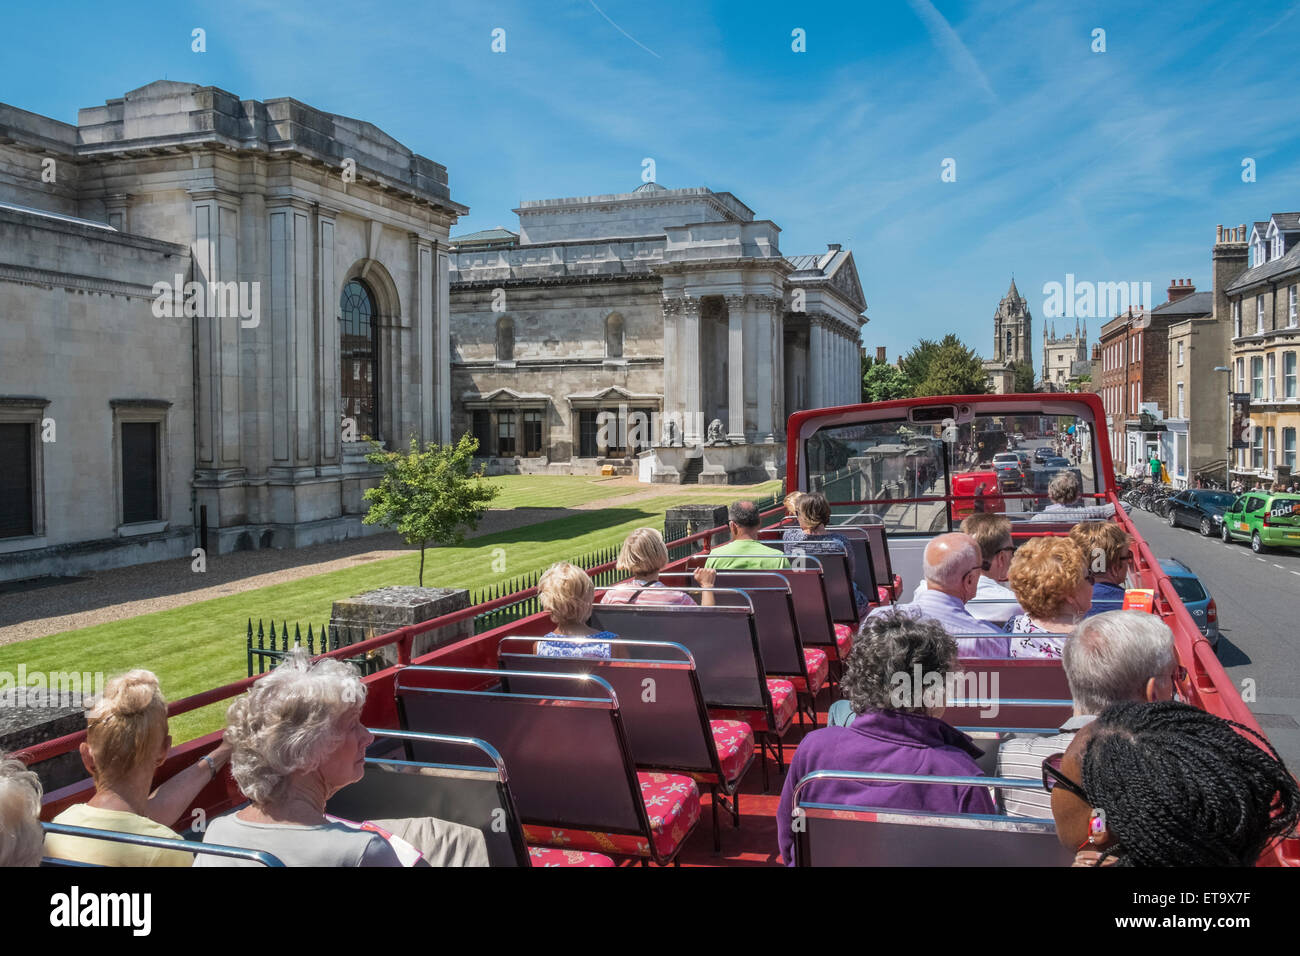 Tourists on open top city sightseeing bus near Fitzwilliam Museum, Trumpington Street, Cambridge, England UK - Stock Image